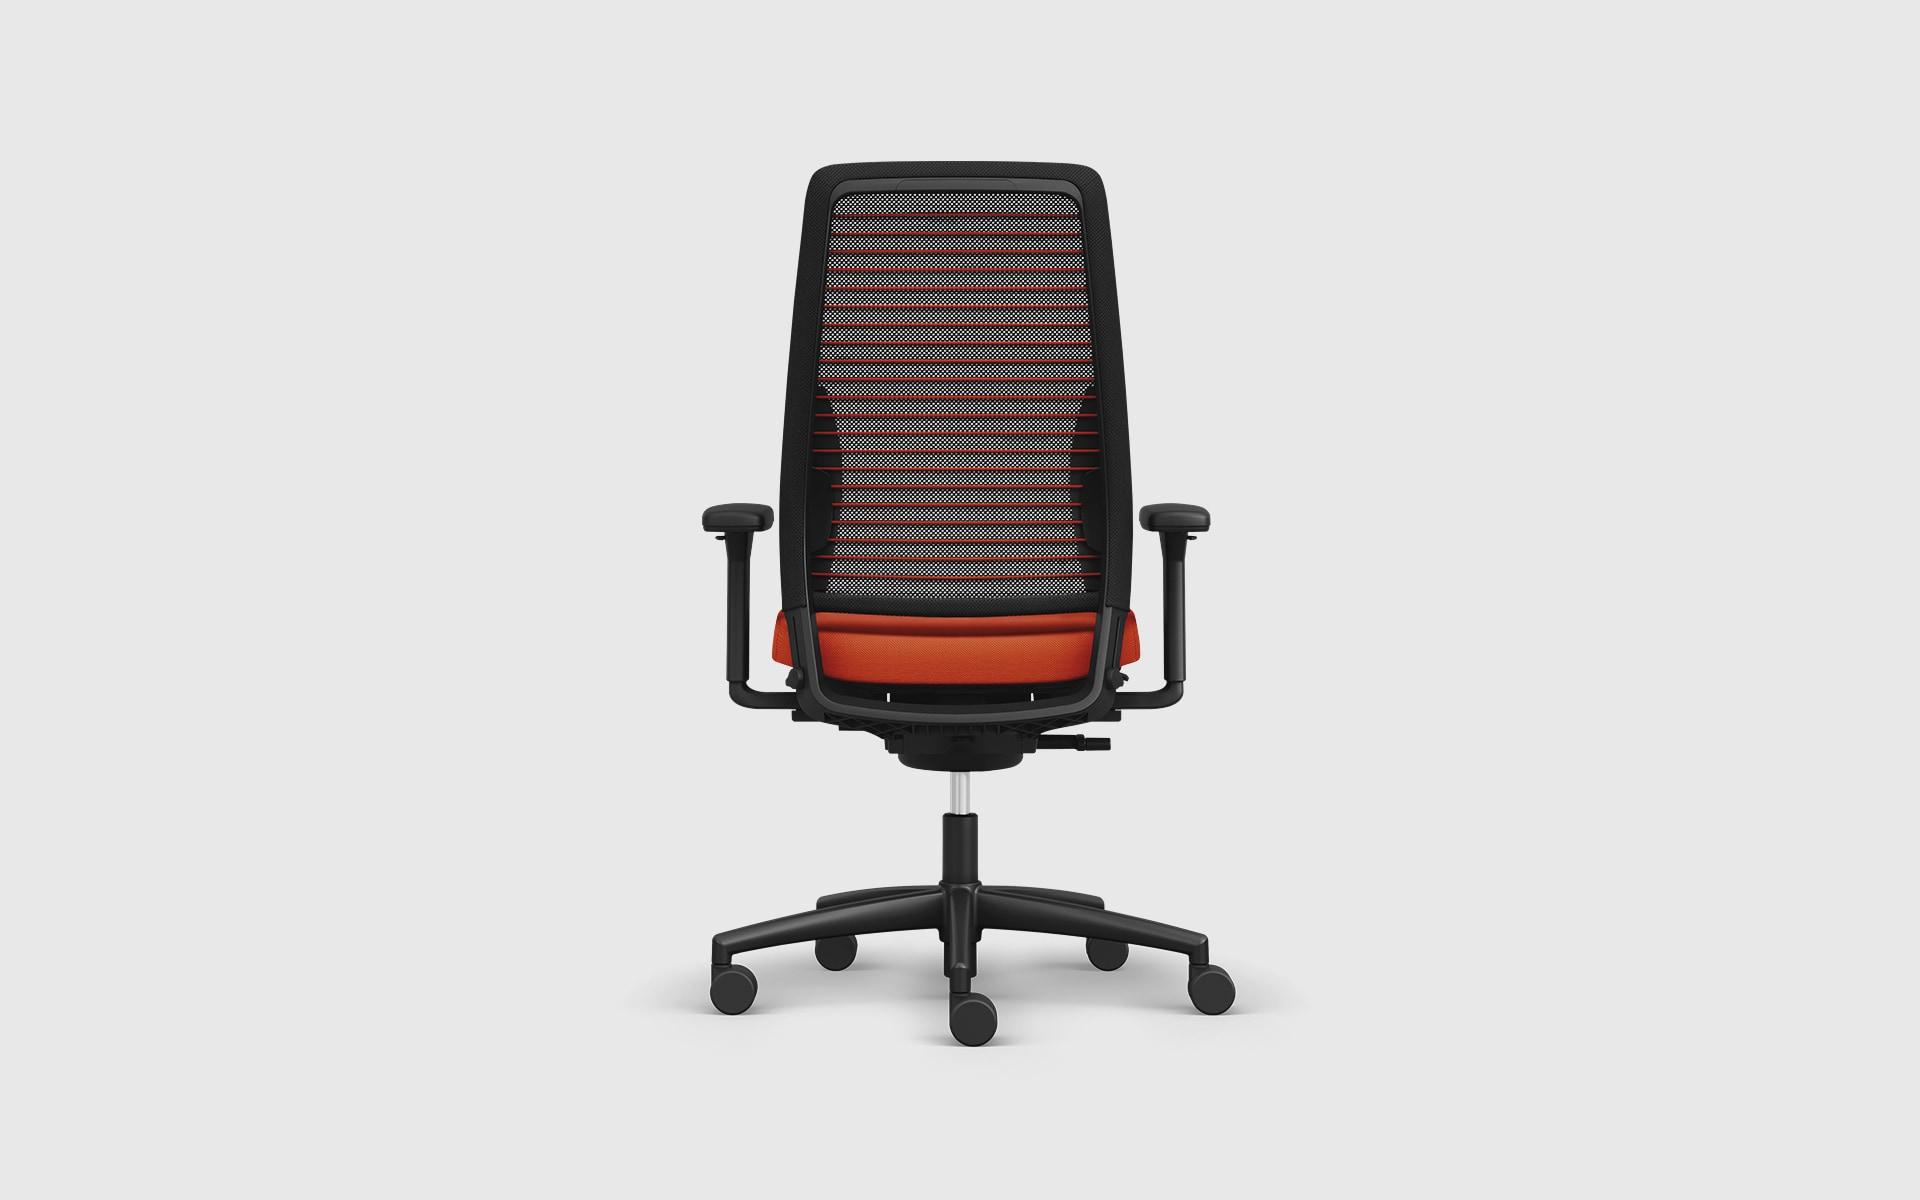 The K+N Okay III office chair by ITO Design in black and orange